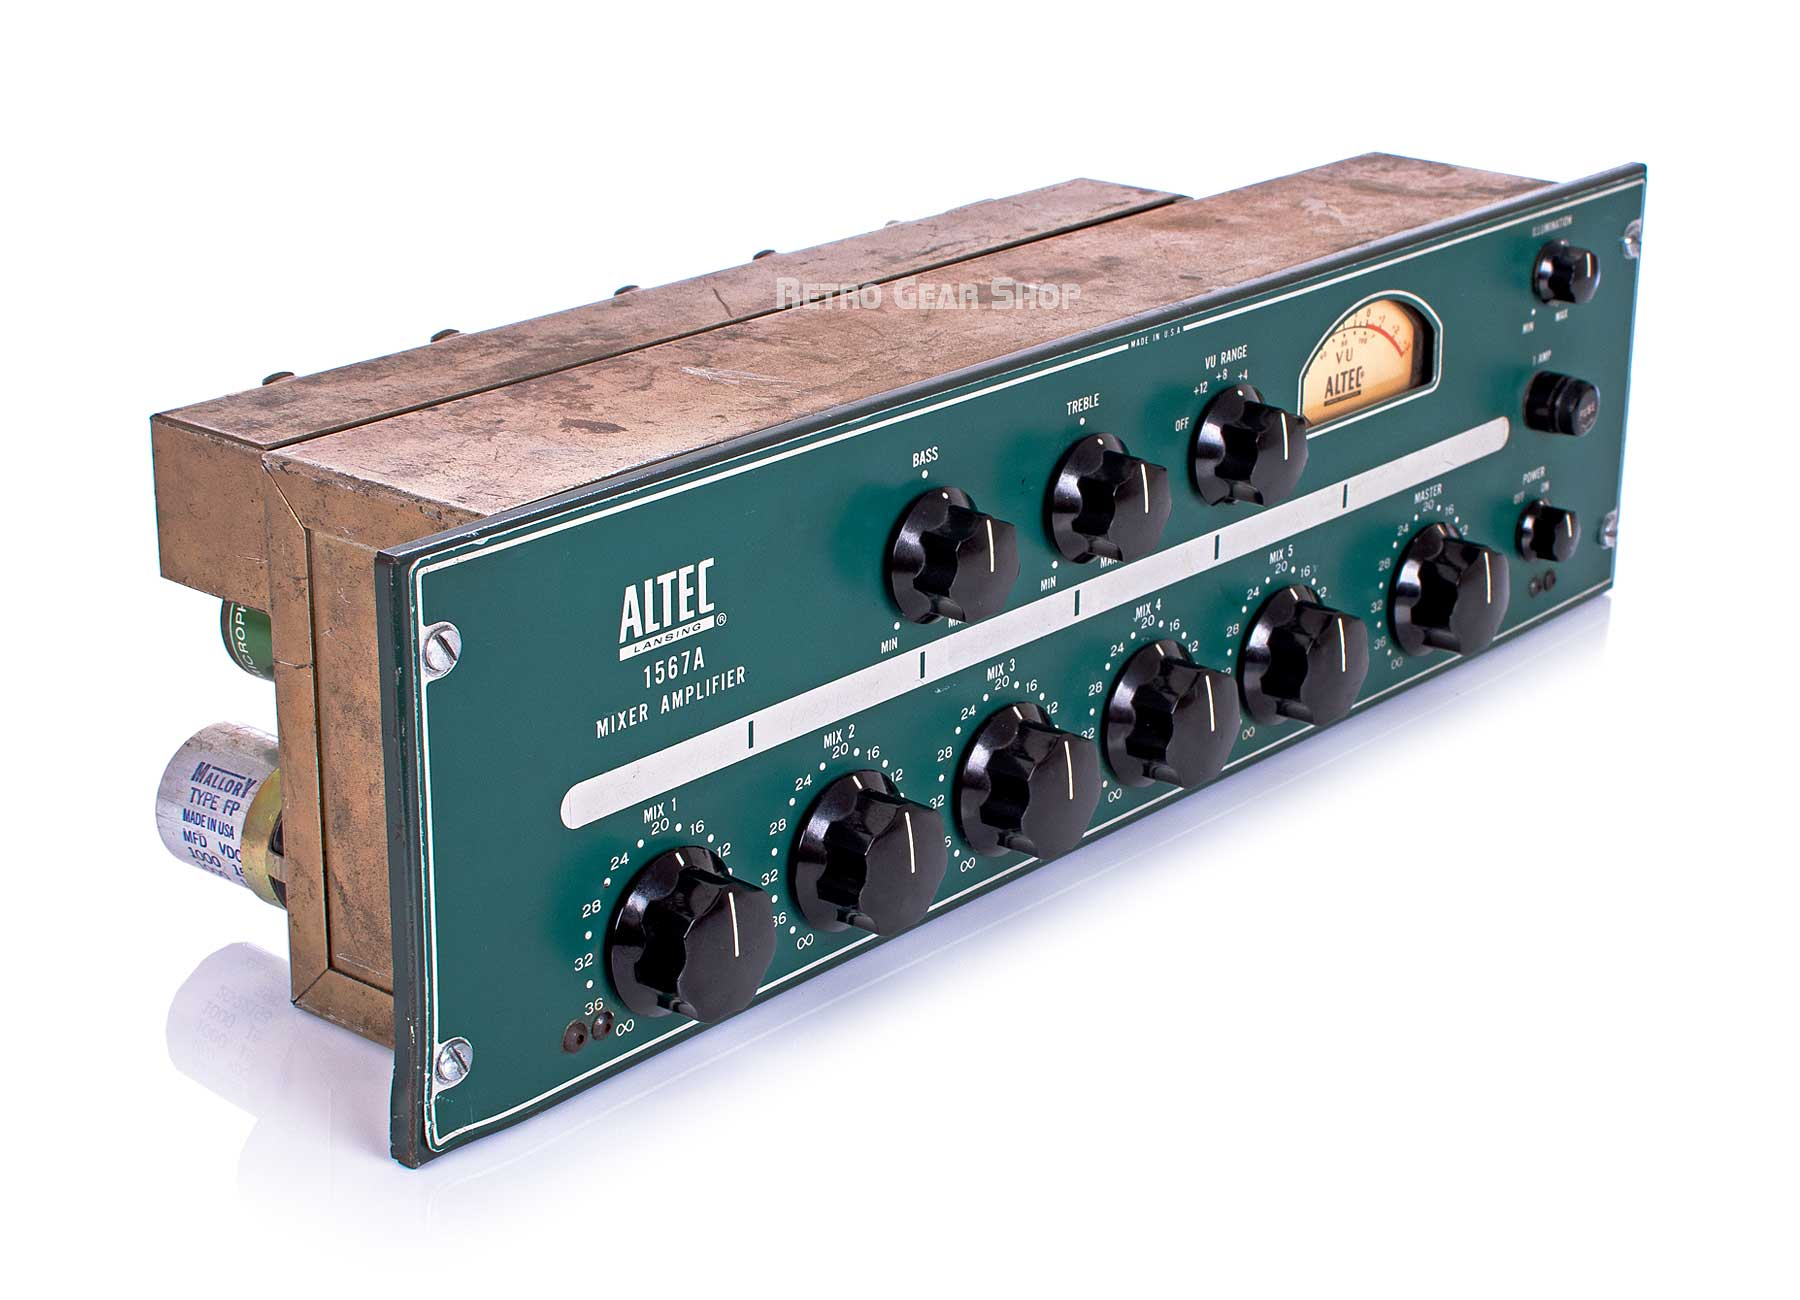 Altec 1567A Mixer Amplifier Top Left